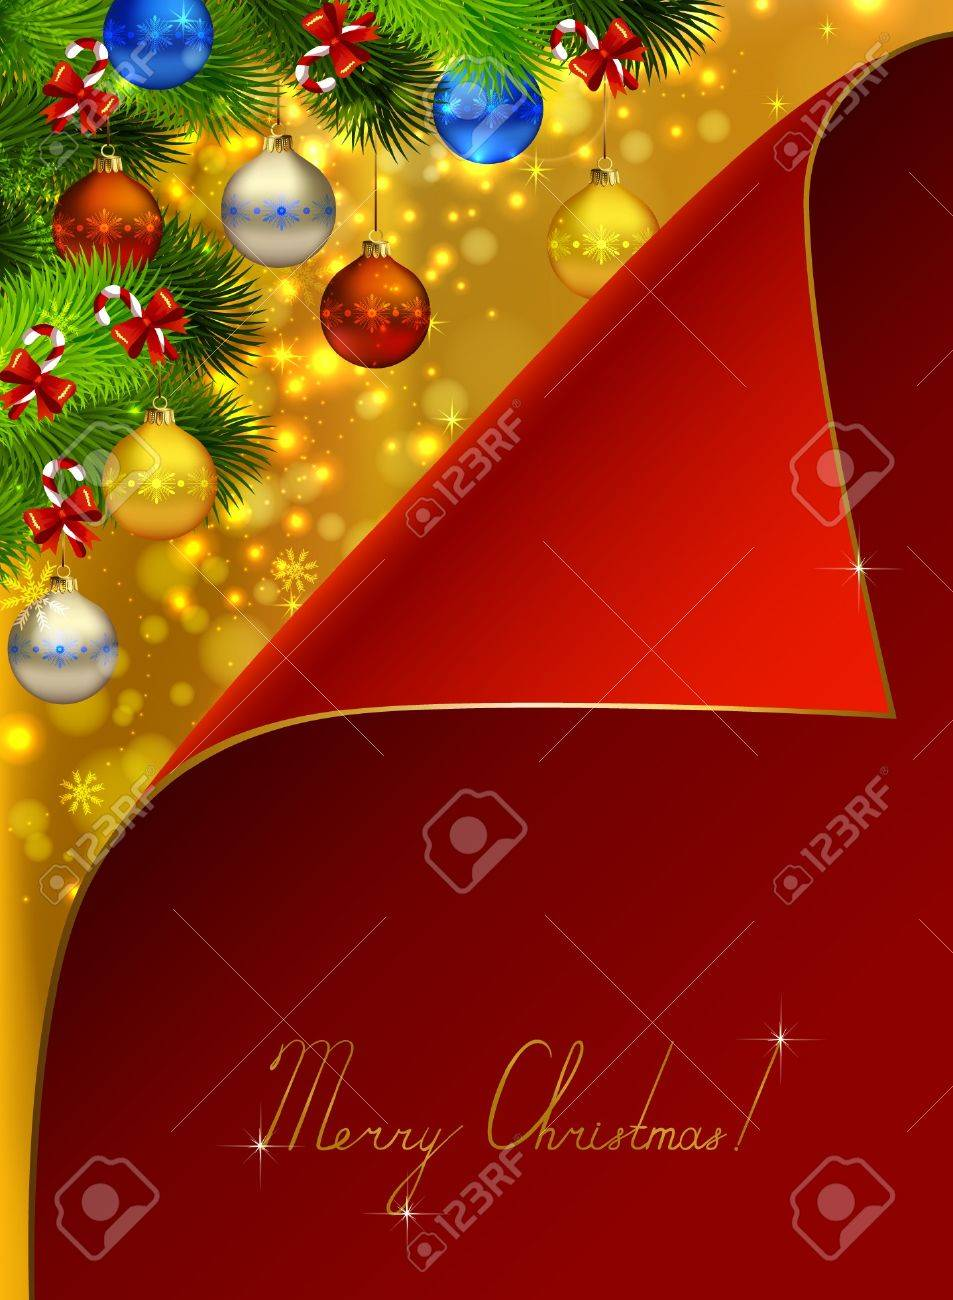 Red Greeting-card Covers Christmas Background With Fir Tree ...